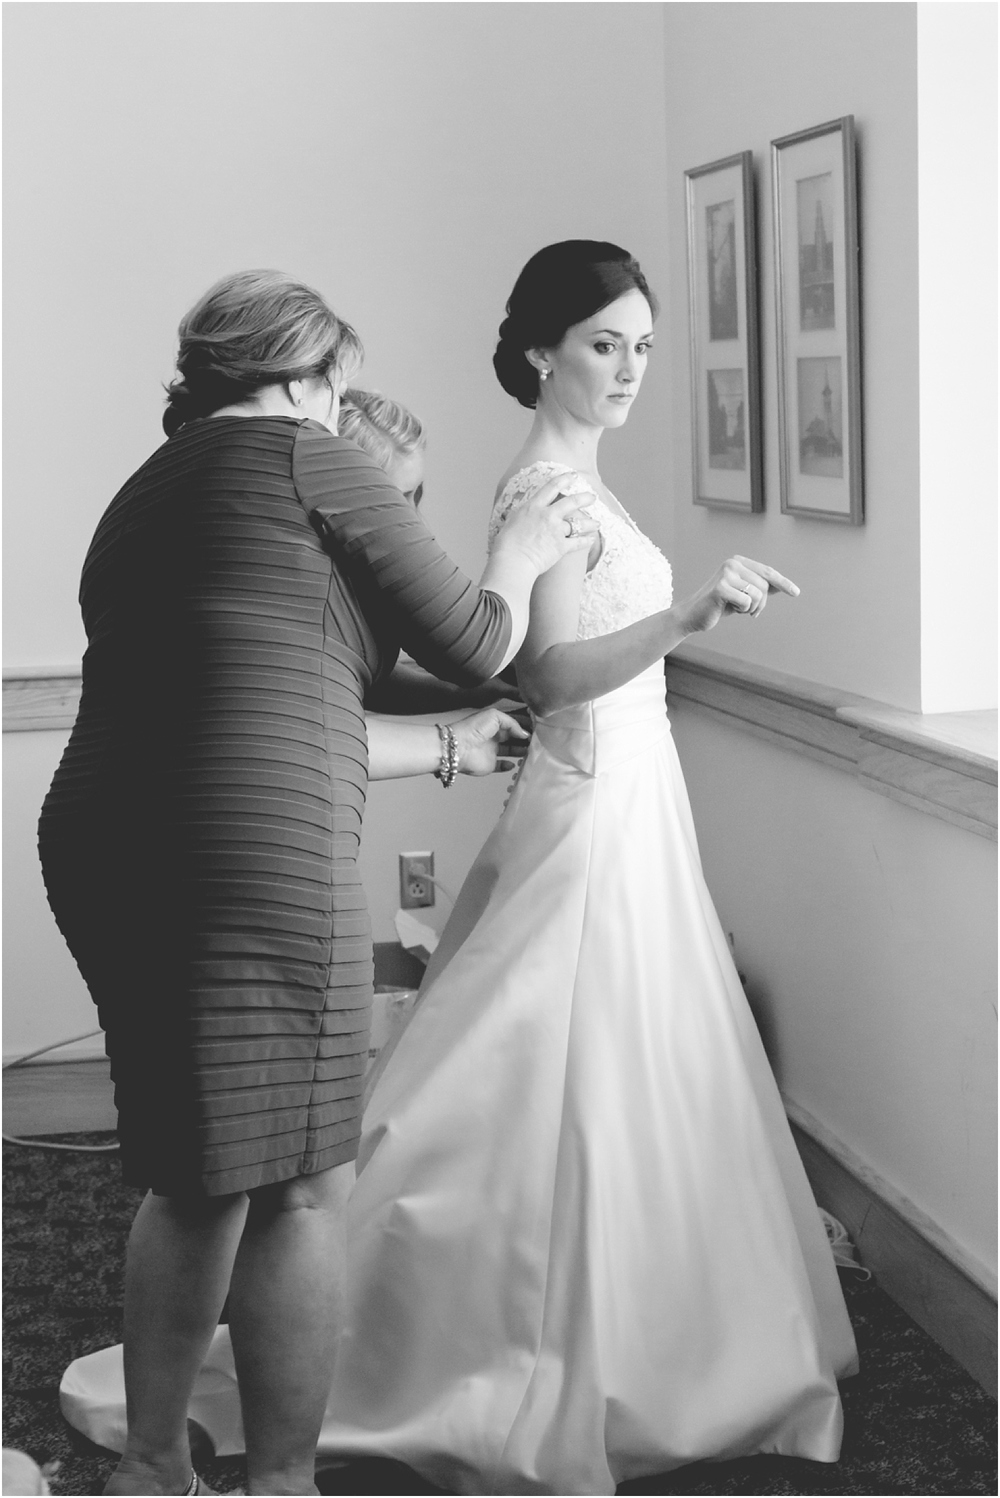 Getting Ready,To Color,bride,greenville wedding,groom,outdoor wedding,wedding,wedding photography,